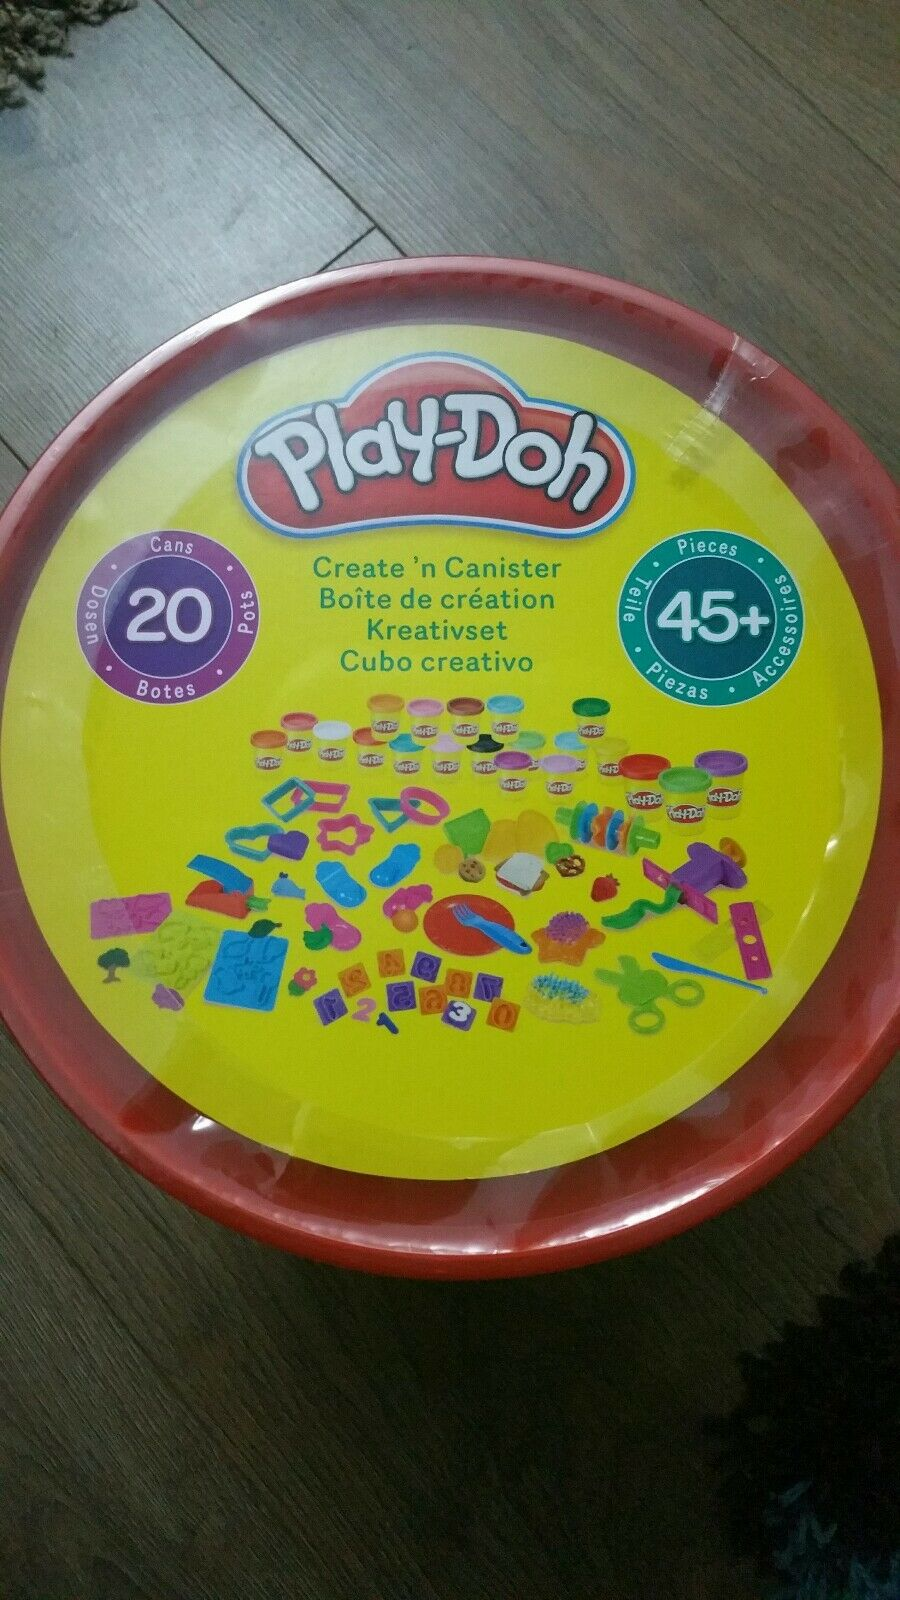 PlayDoh Create N Canister, 20 Tubs, 45 Accessories. NEW sealed Christmas Present